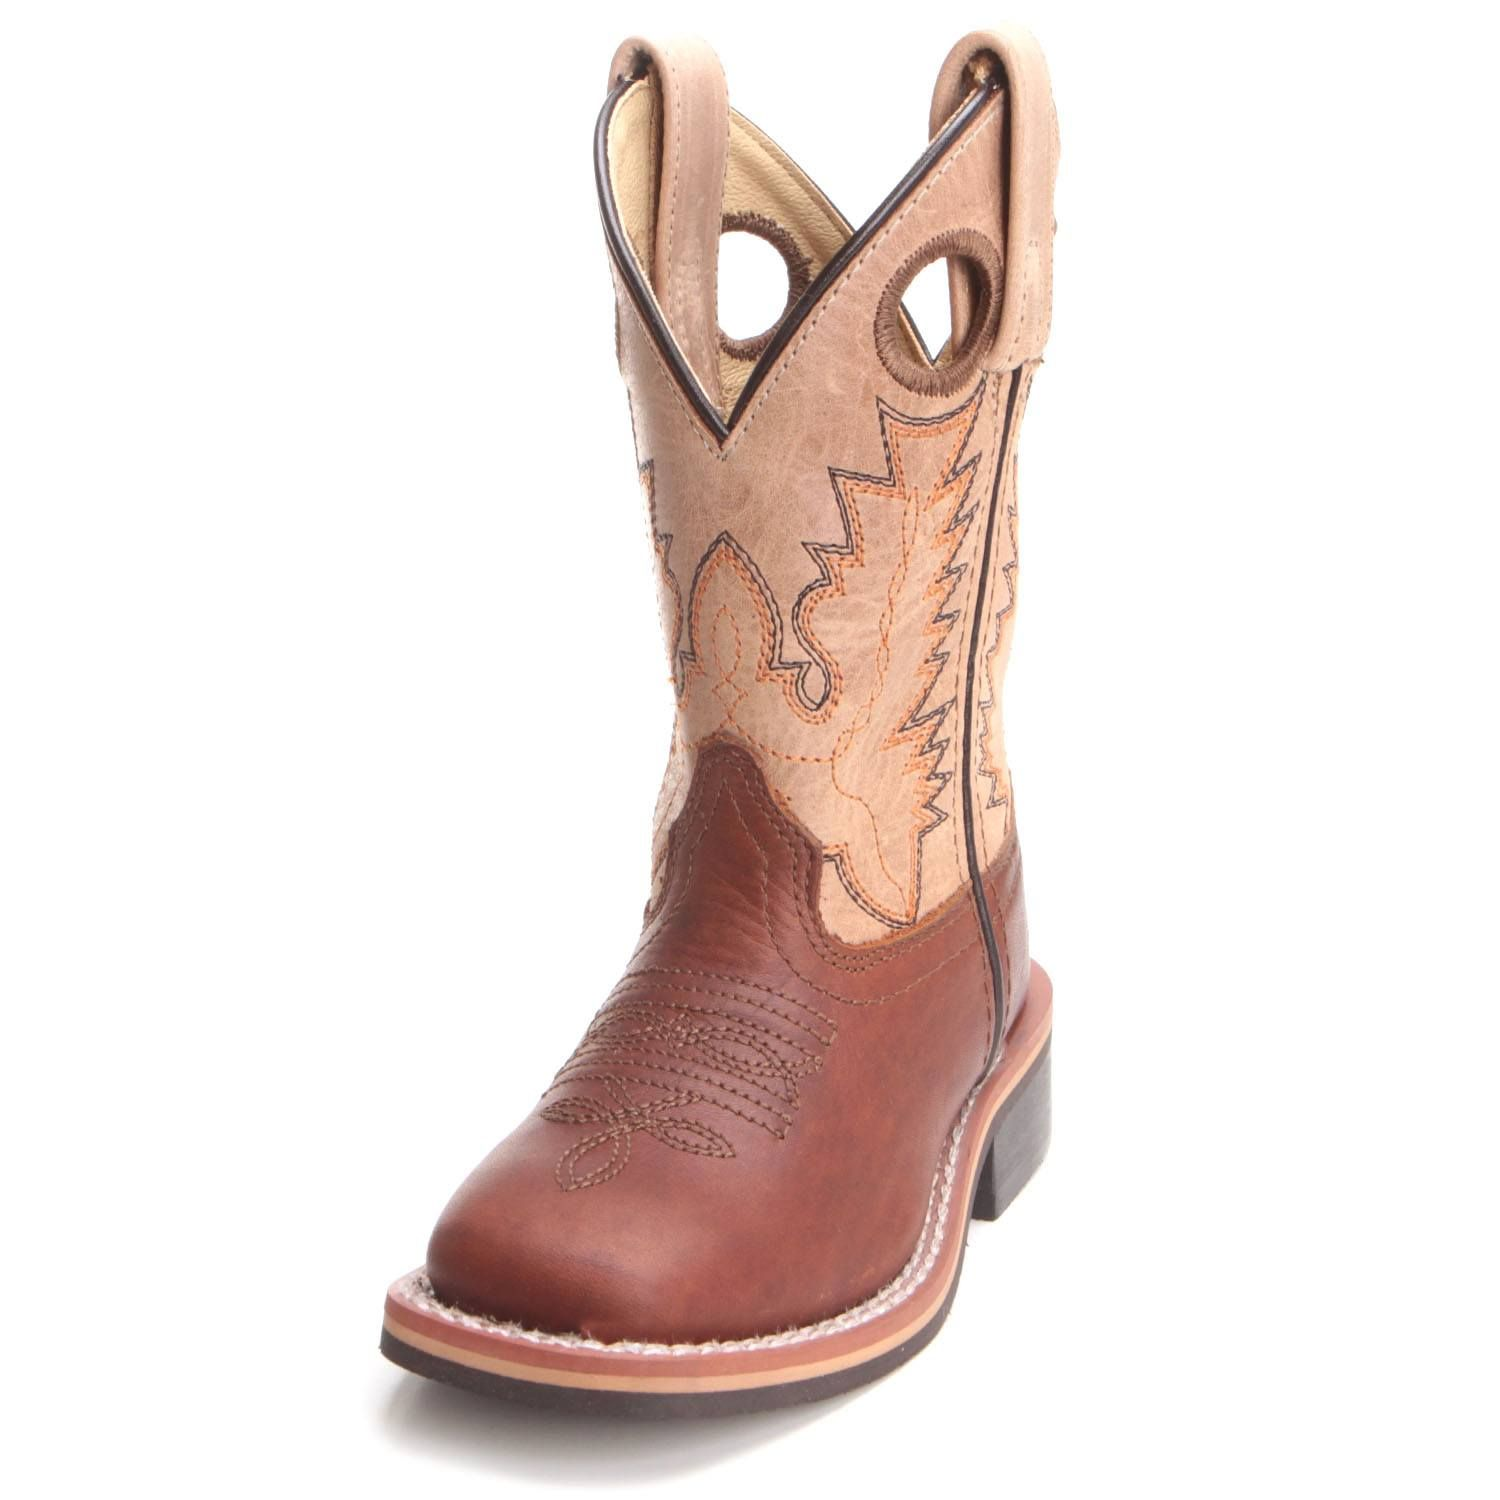 79095811341 Smoky Mountain Childrens Unisex Cowboy Boots Tan 3663C in 2019 ...